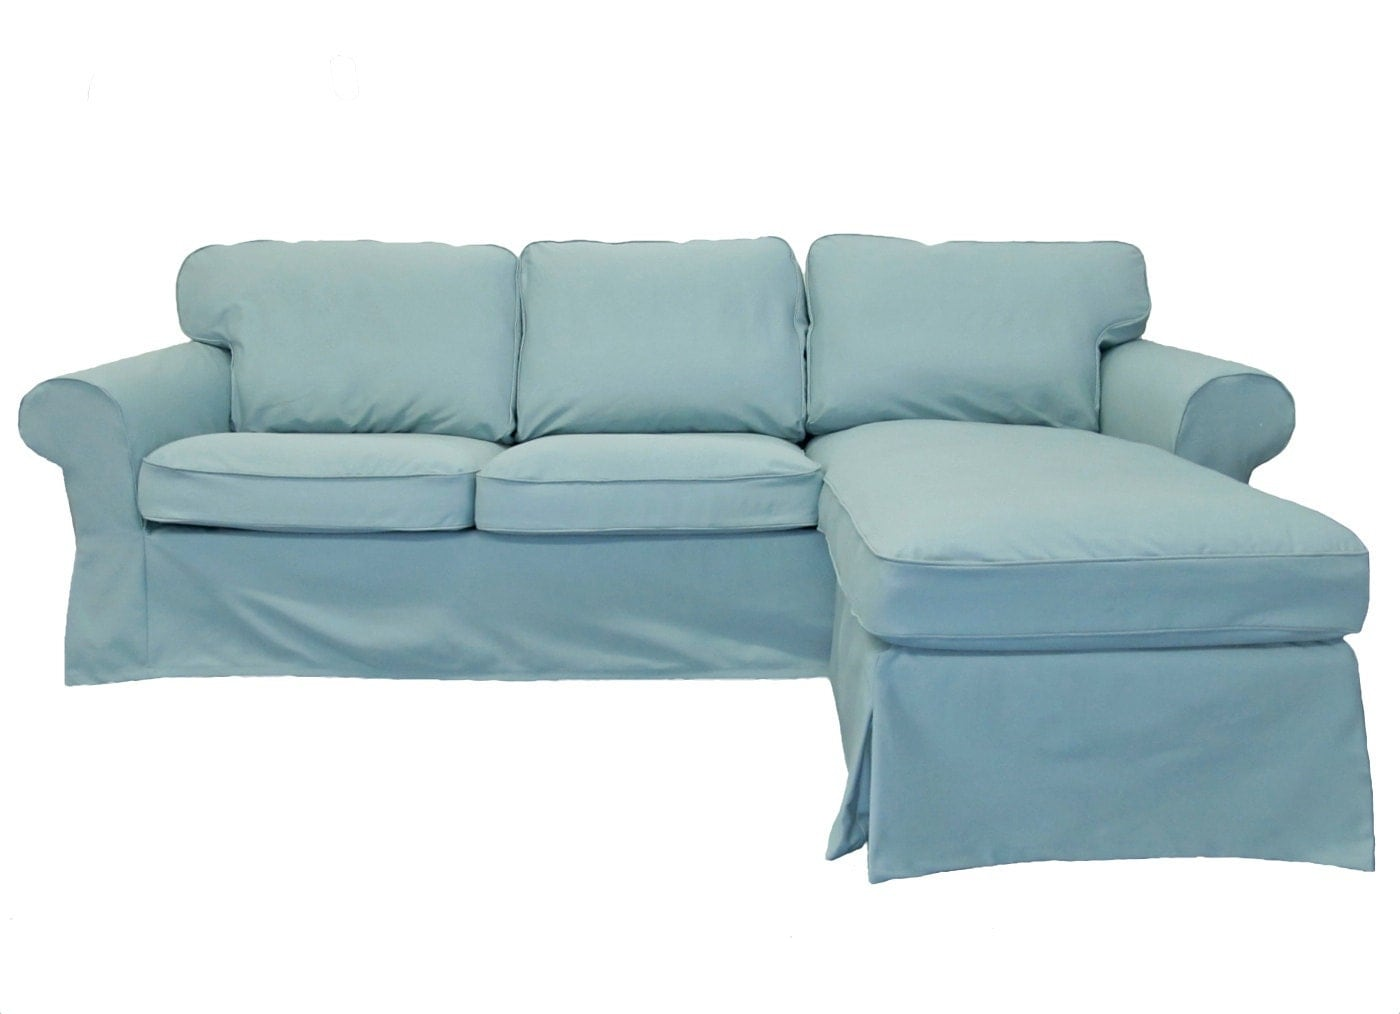 Sofa sectional with chaise minimalist home design for Chaise design ikea